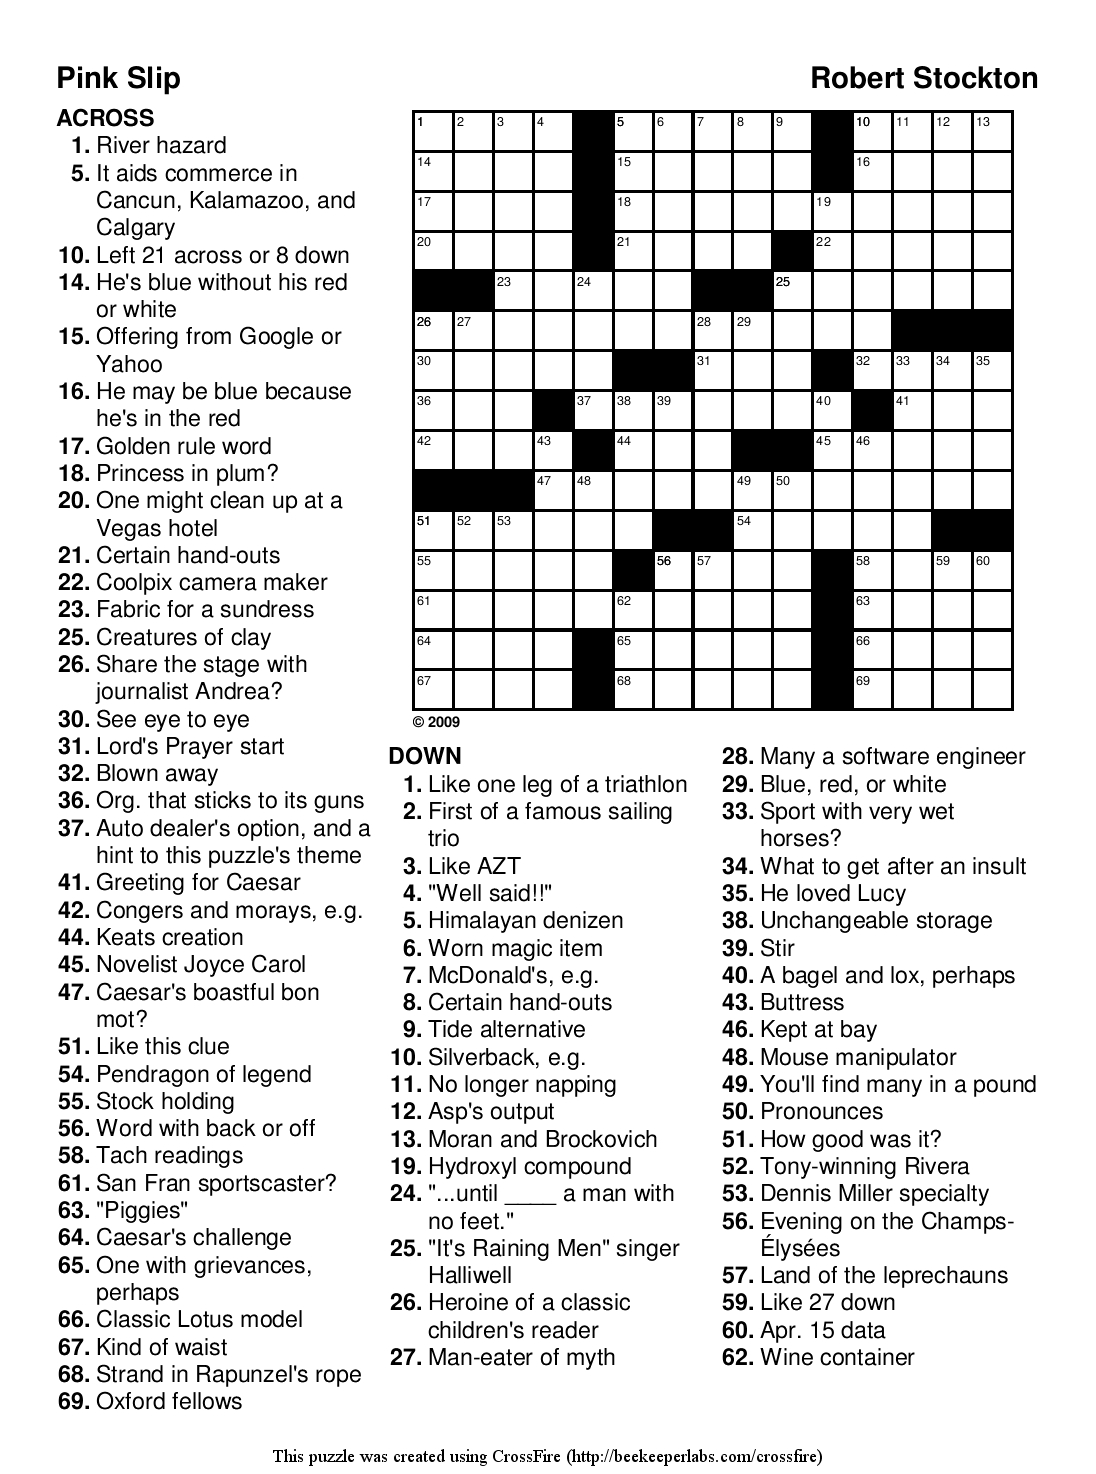 Printable Puzzles For Adults | Easy Word Puzzles Printable Festivals - Printable Puzzles And Games For Adults